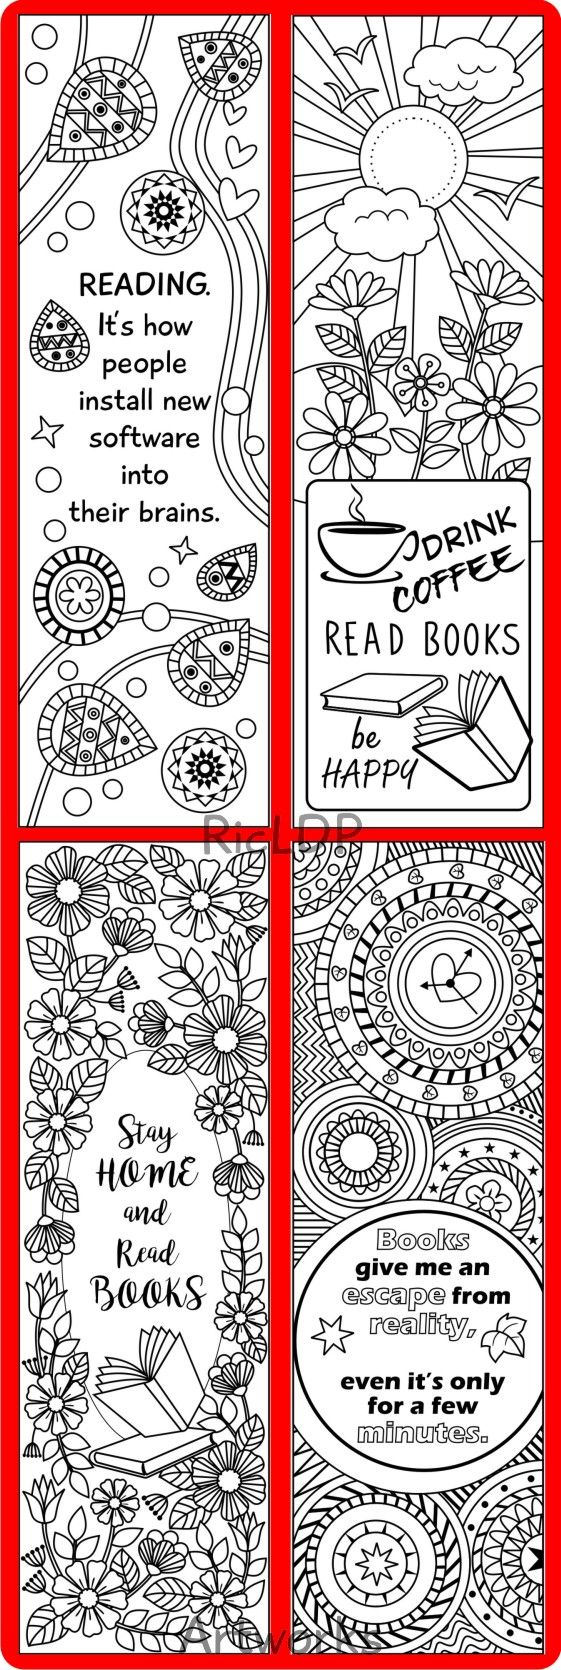 Coloring quotes printables - Printable 8 Coloring Bookmarks Four 4 With Quotes And Four 4